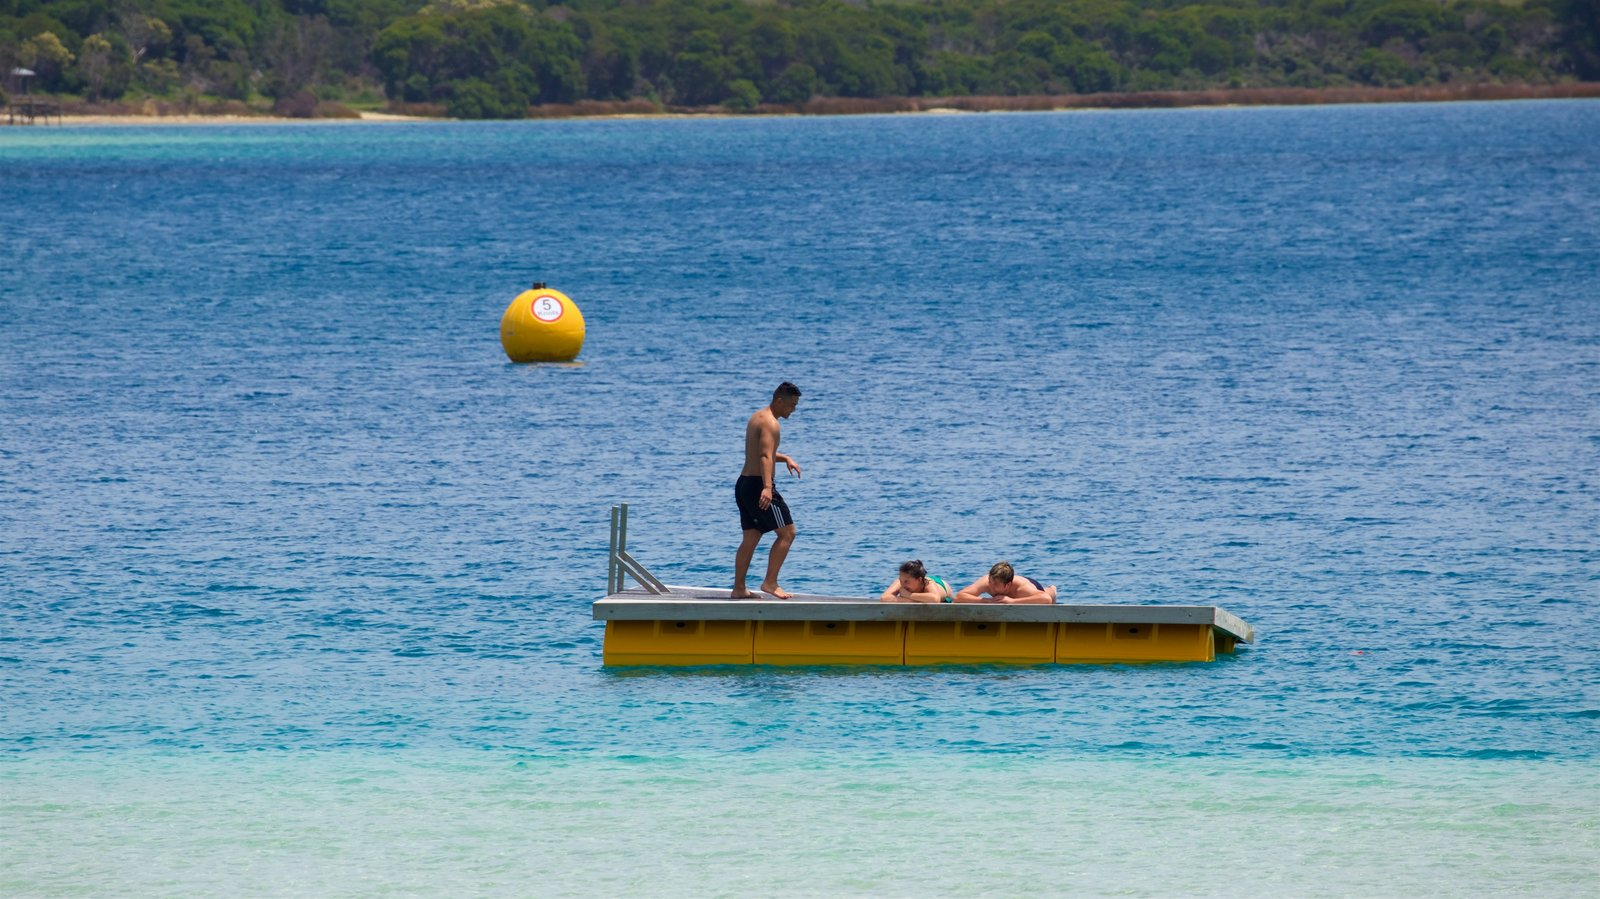 Kai Iwi Lakes which includes a bay or harbor and swimming as well as a small group of people